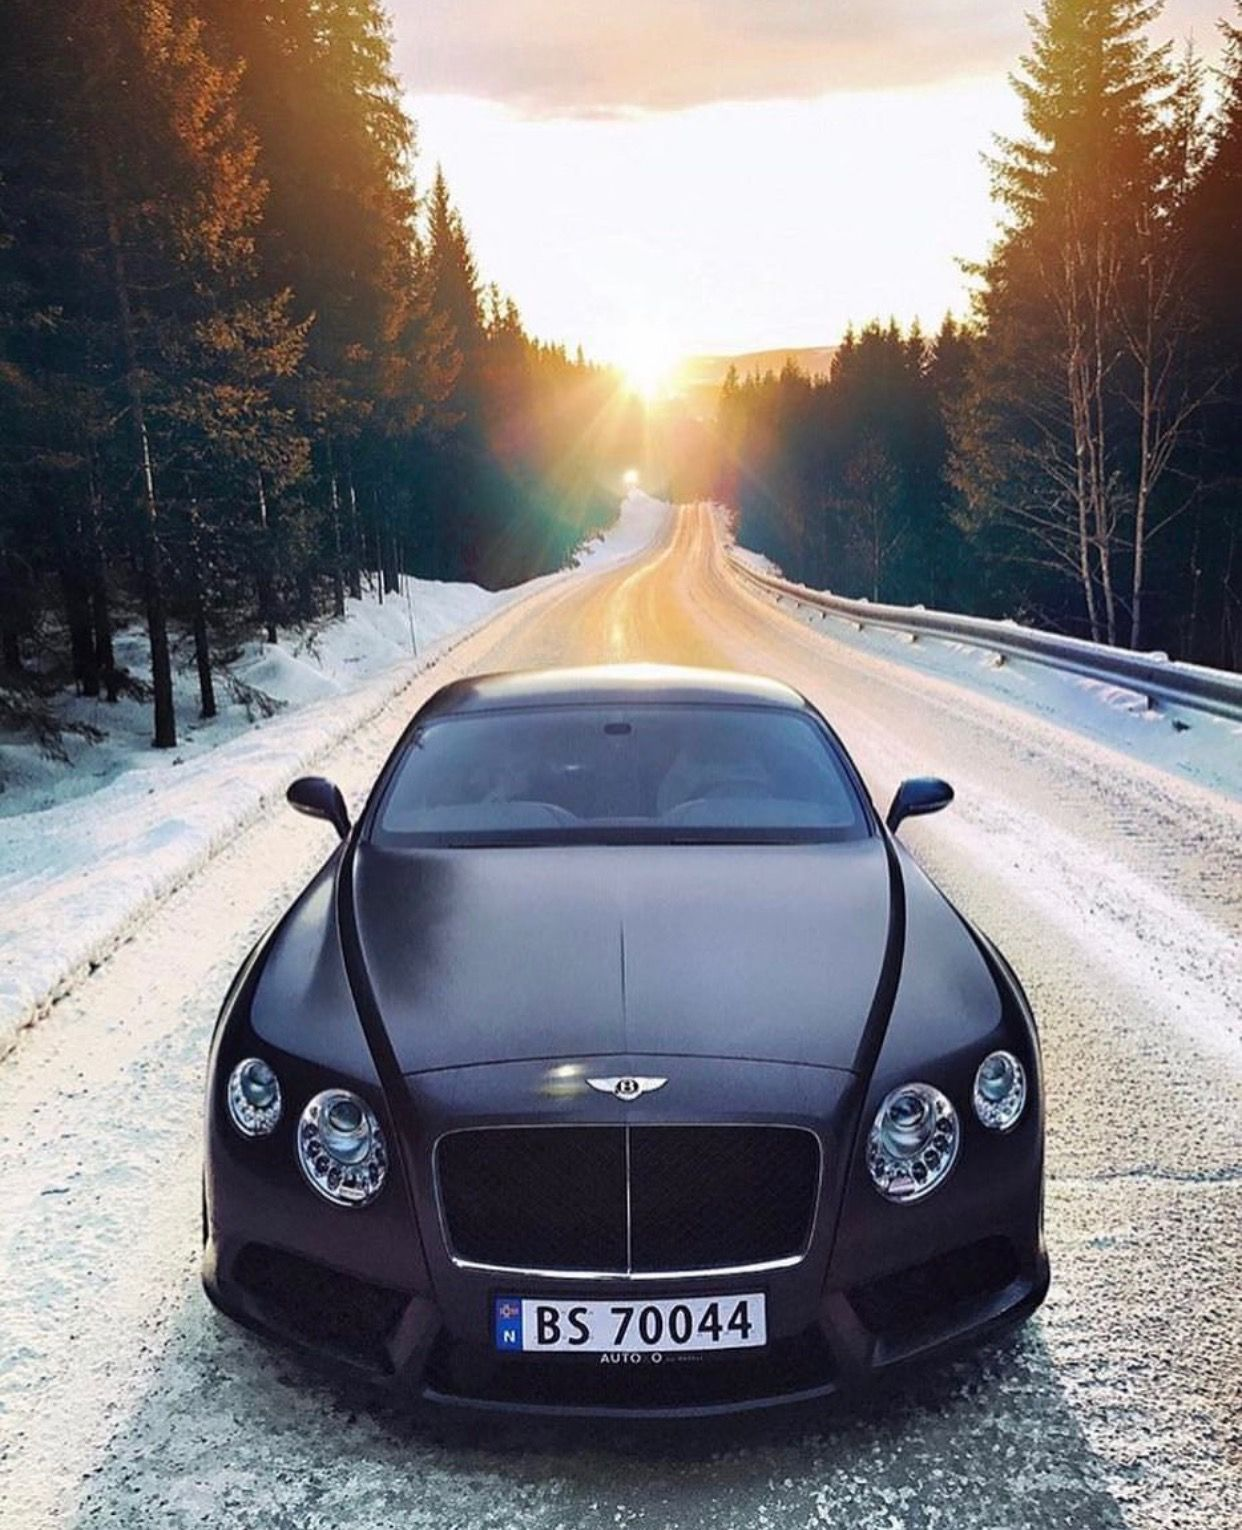 Cars Bentley Suv Luxury Cars: Pin By Business Credit Builders LLC On Luxury Cars